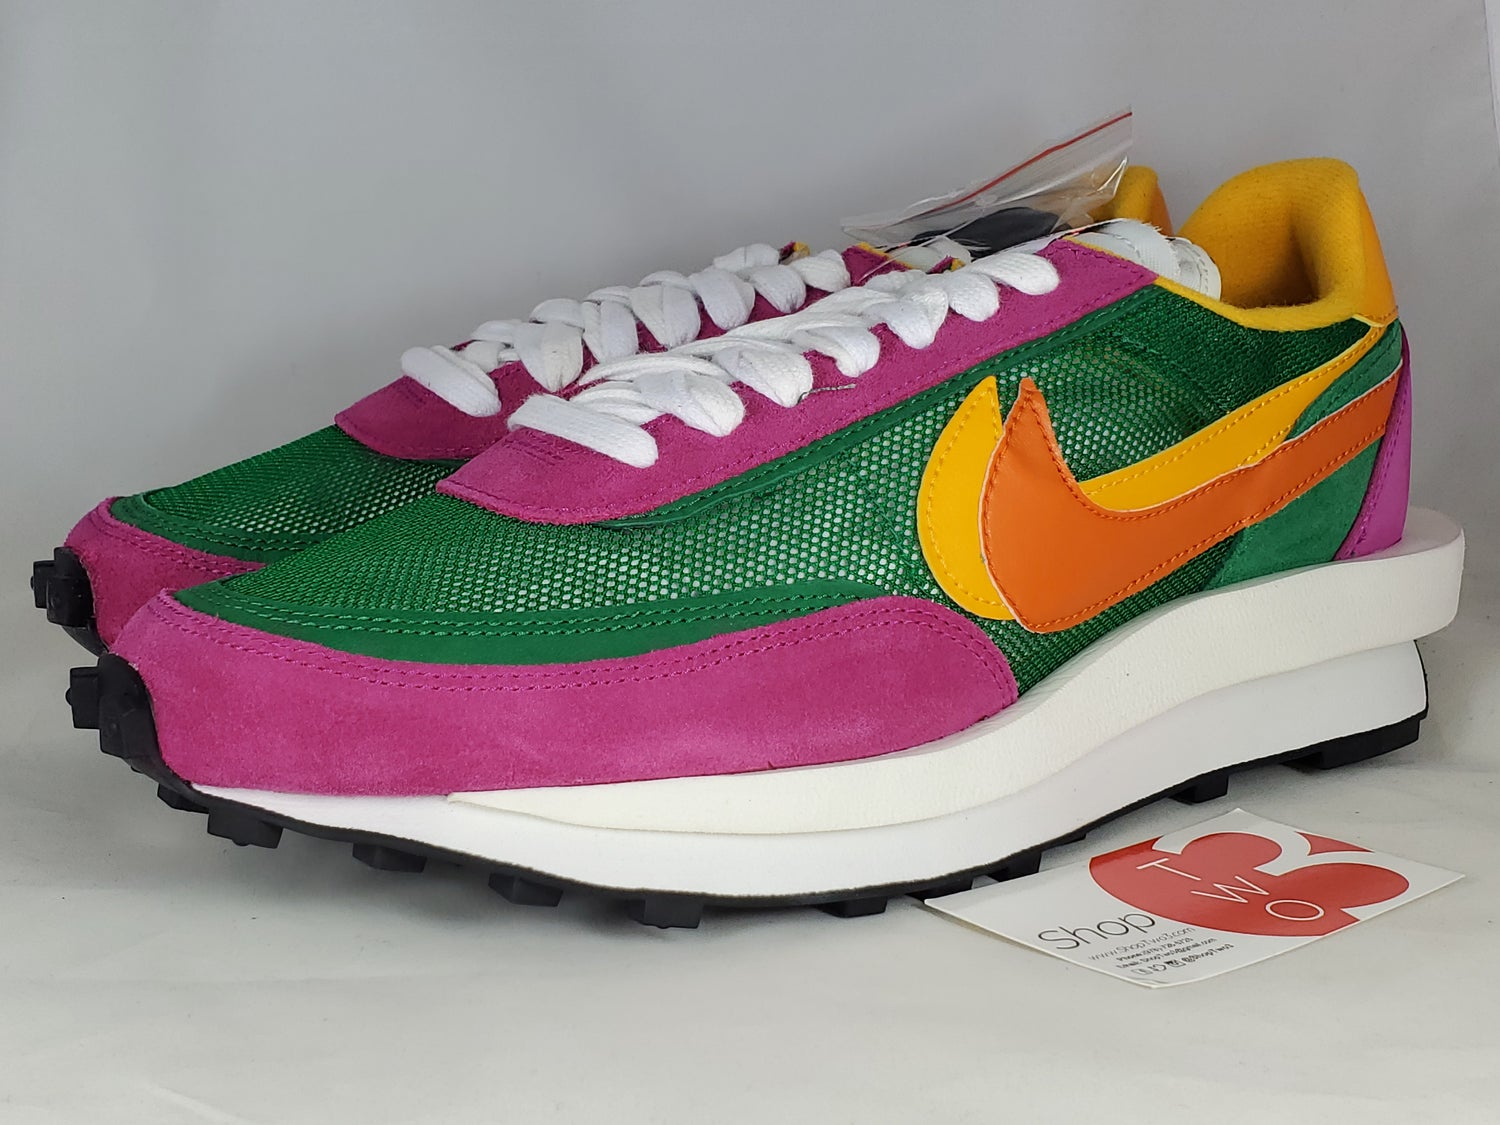 Image of Nike Sacai Pine Green